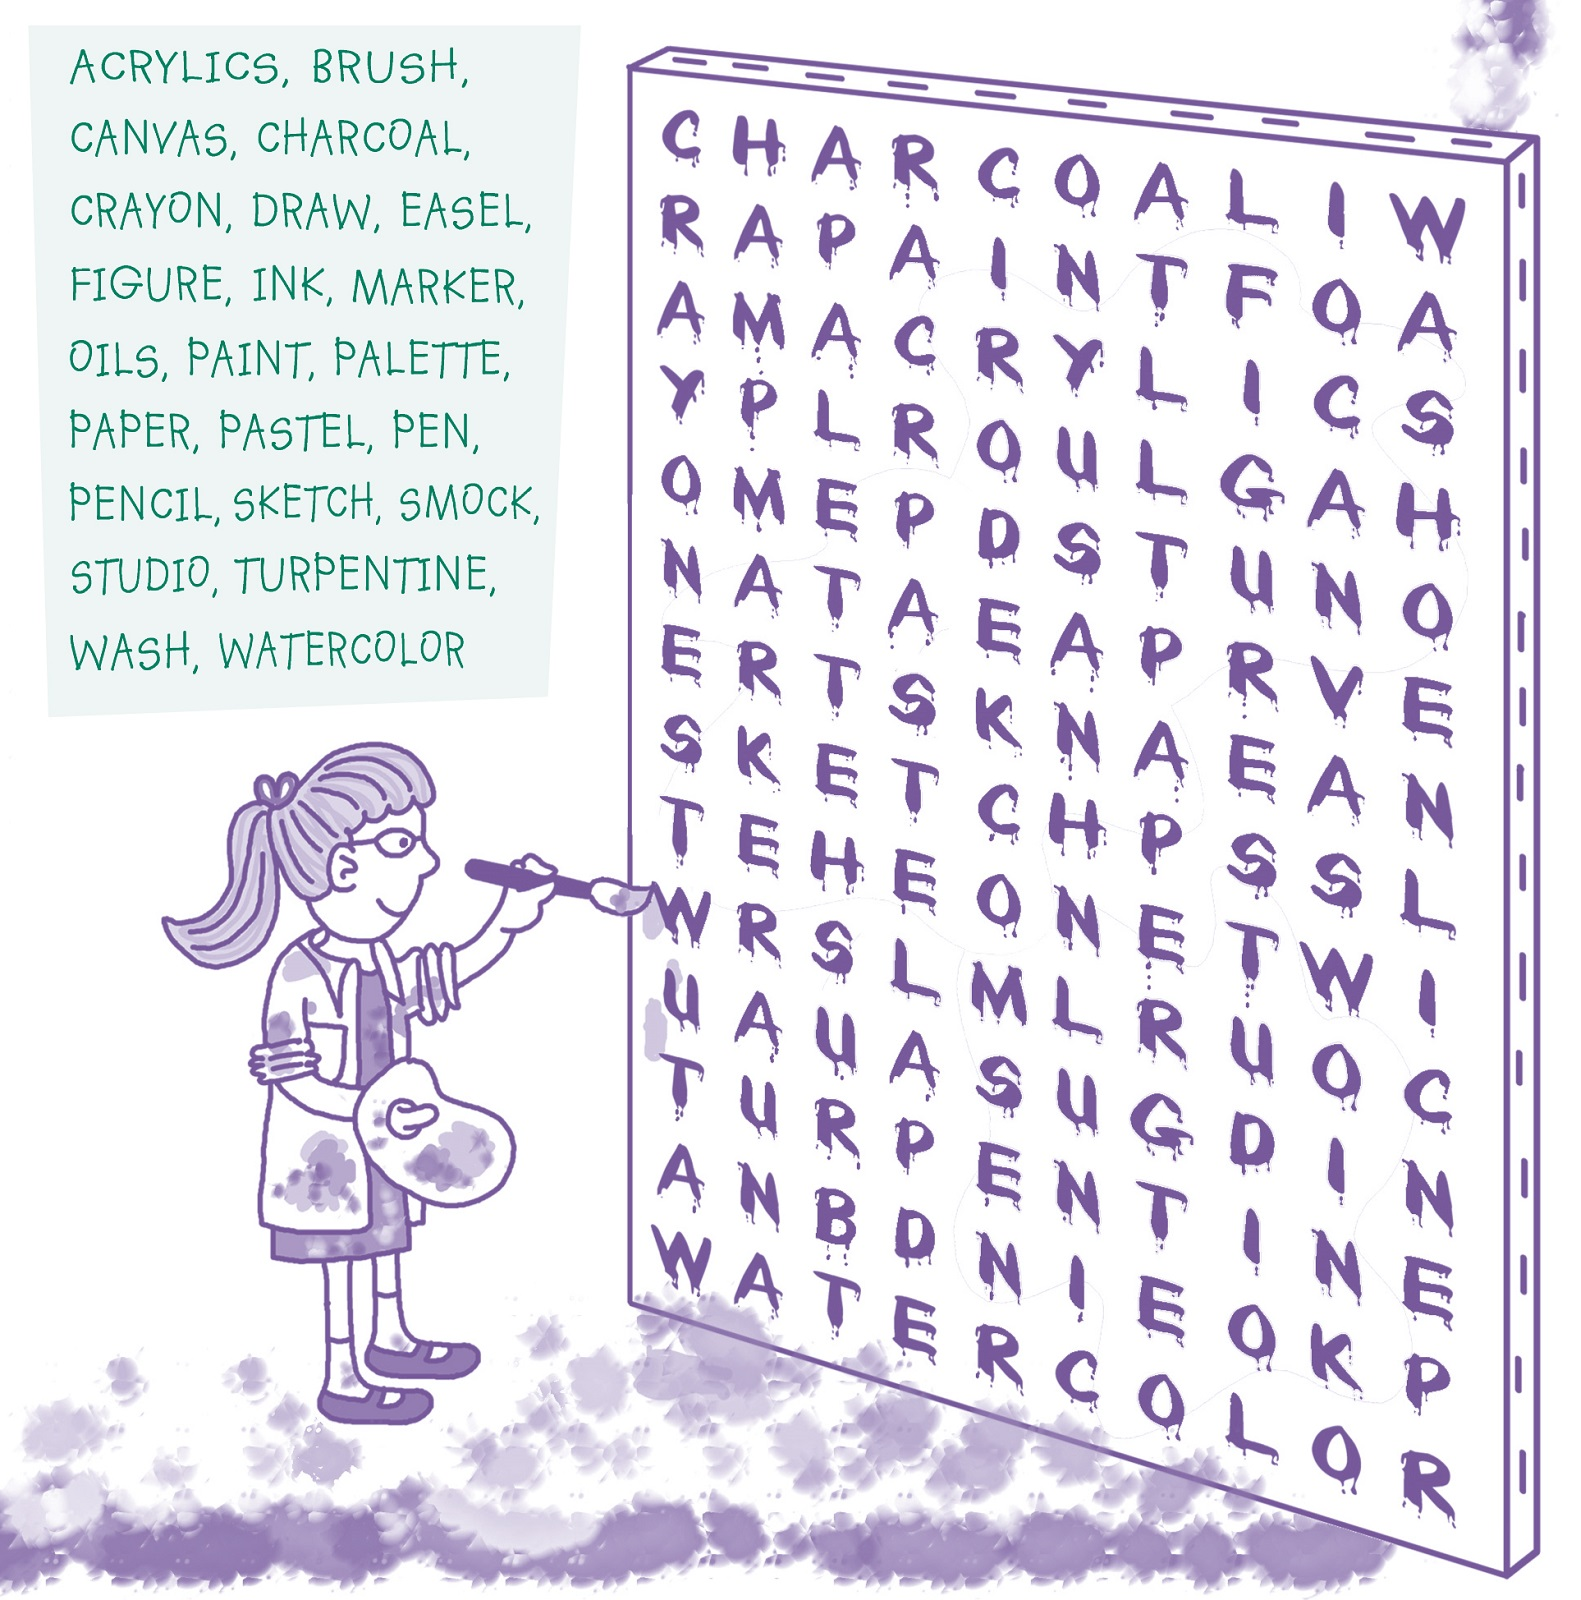 Cool Word Searches To Print